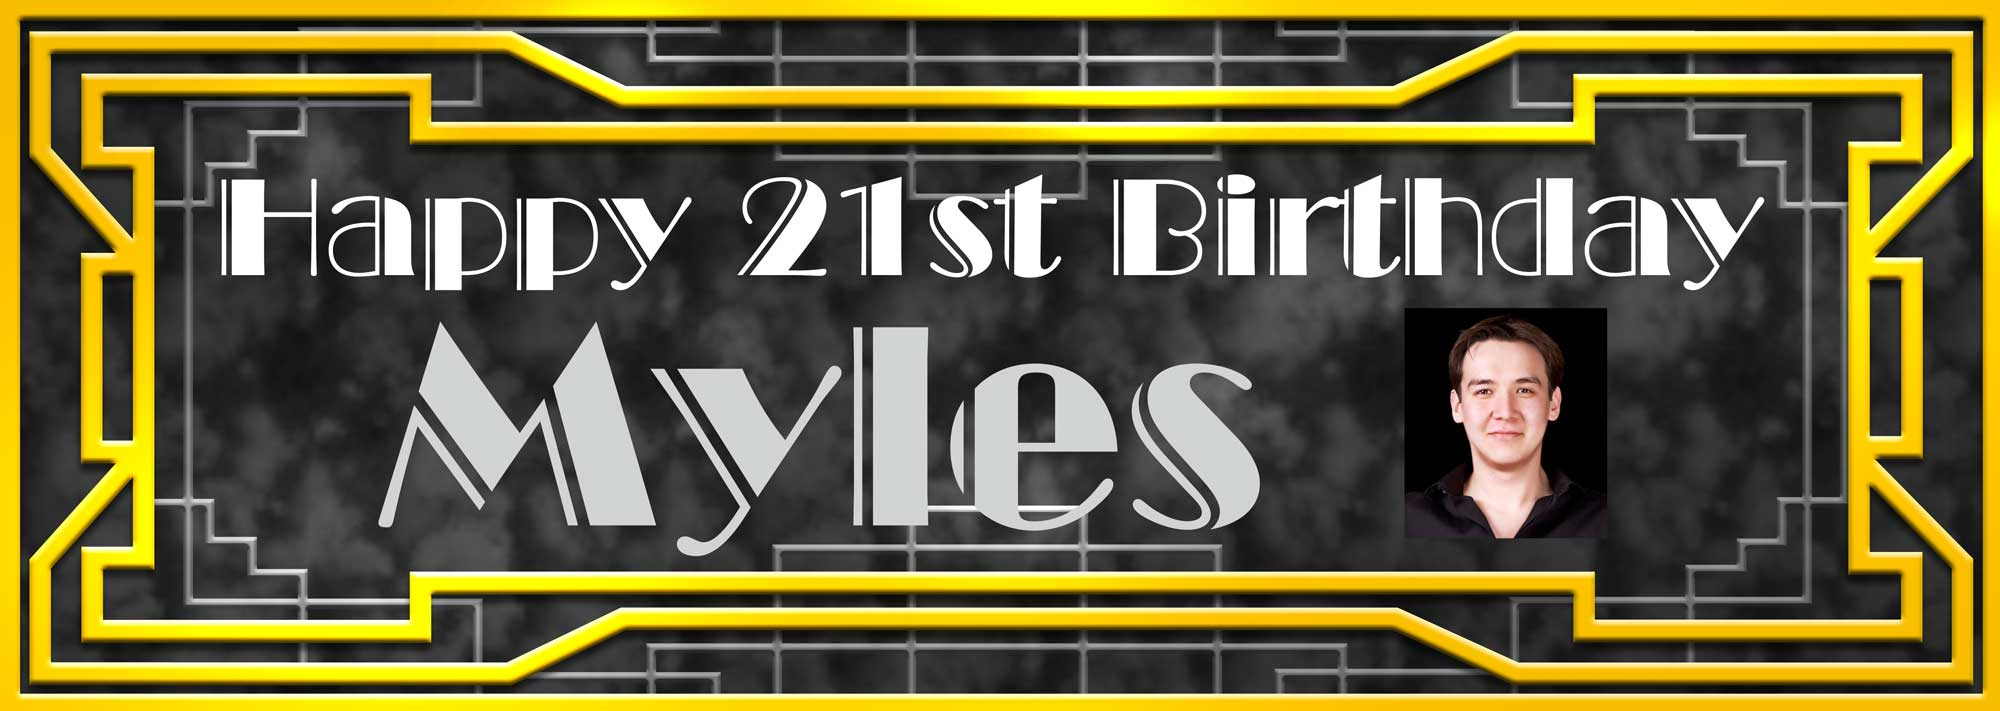 18th birthday banners personalized ; Gatsby